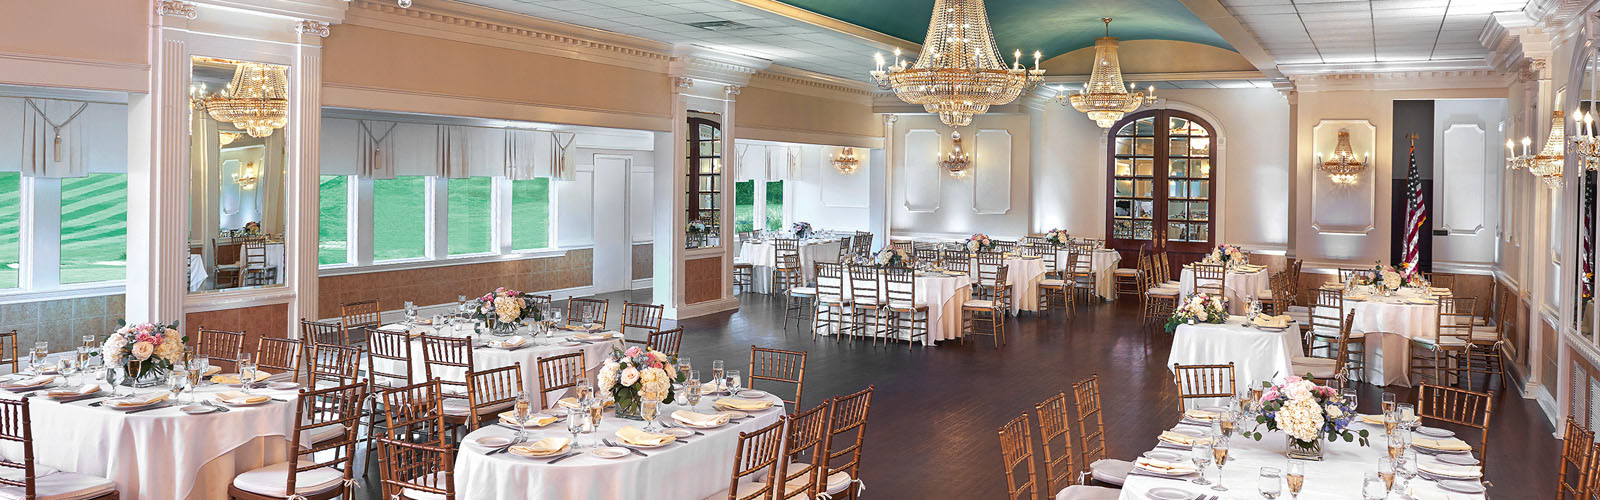 Baby Shower Catering Halls Long Island Baby Showers Terrace On The